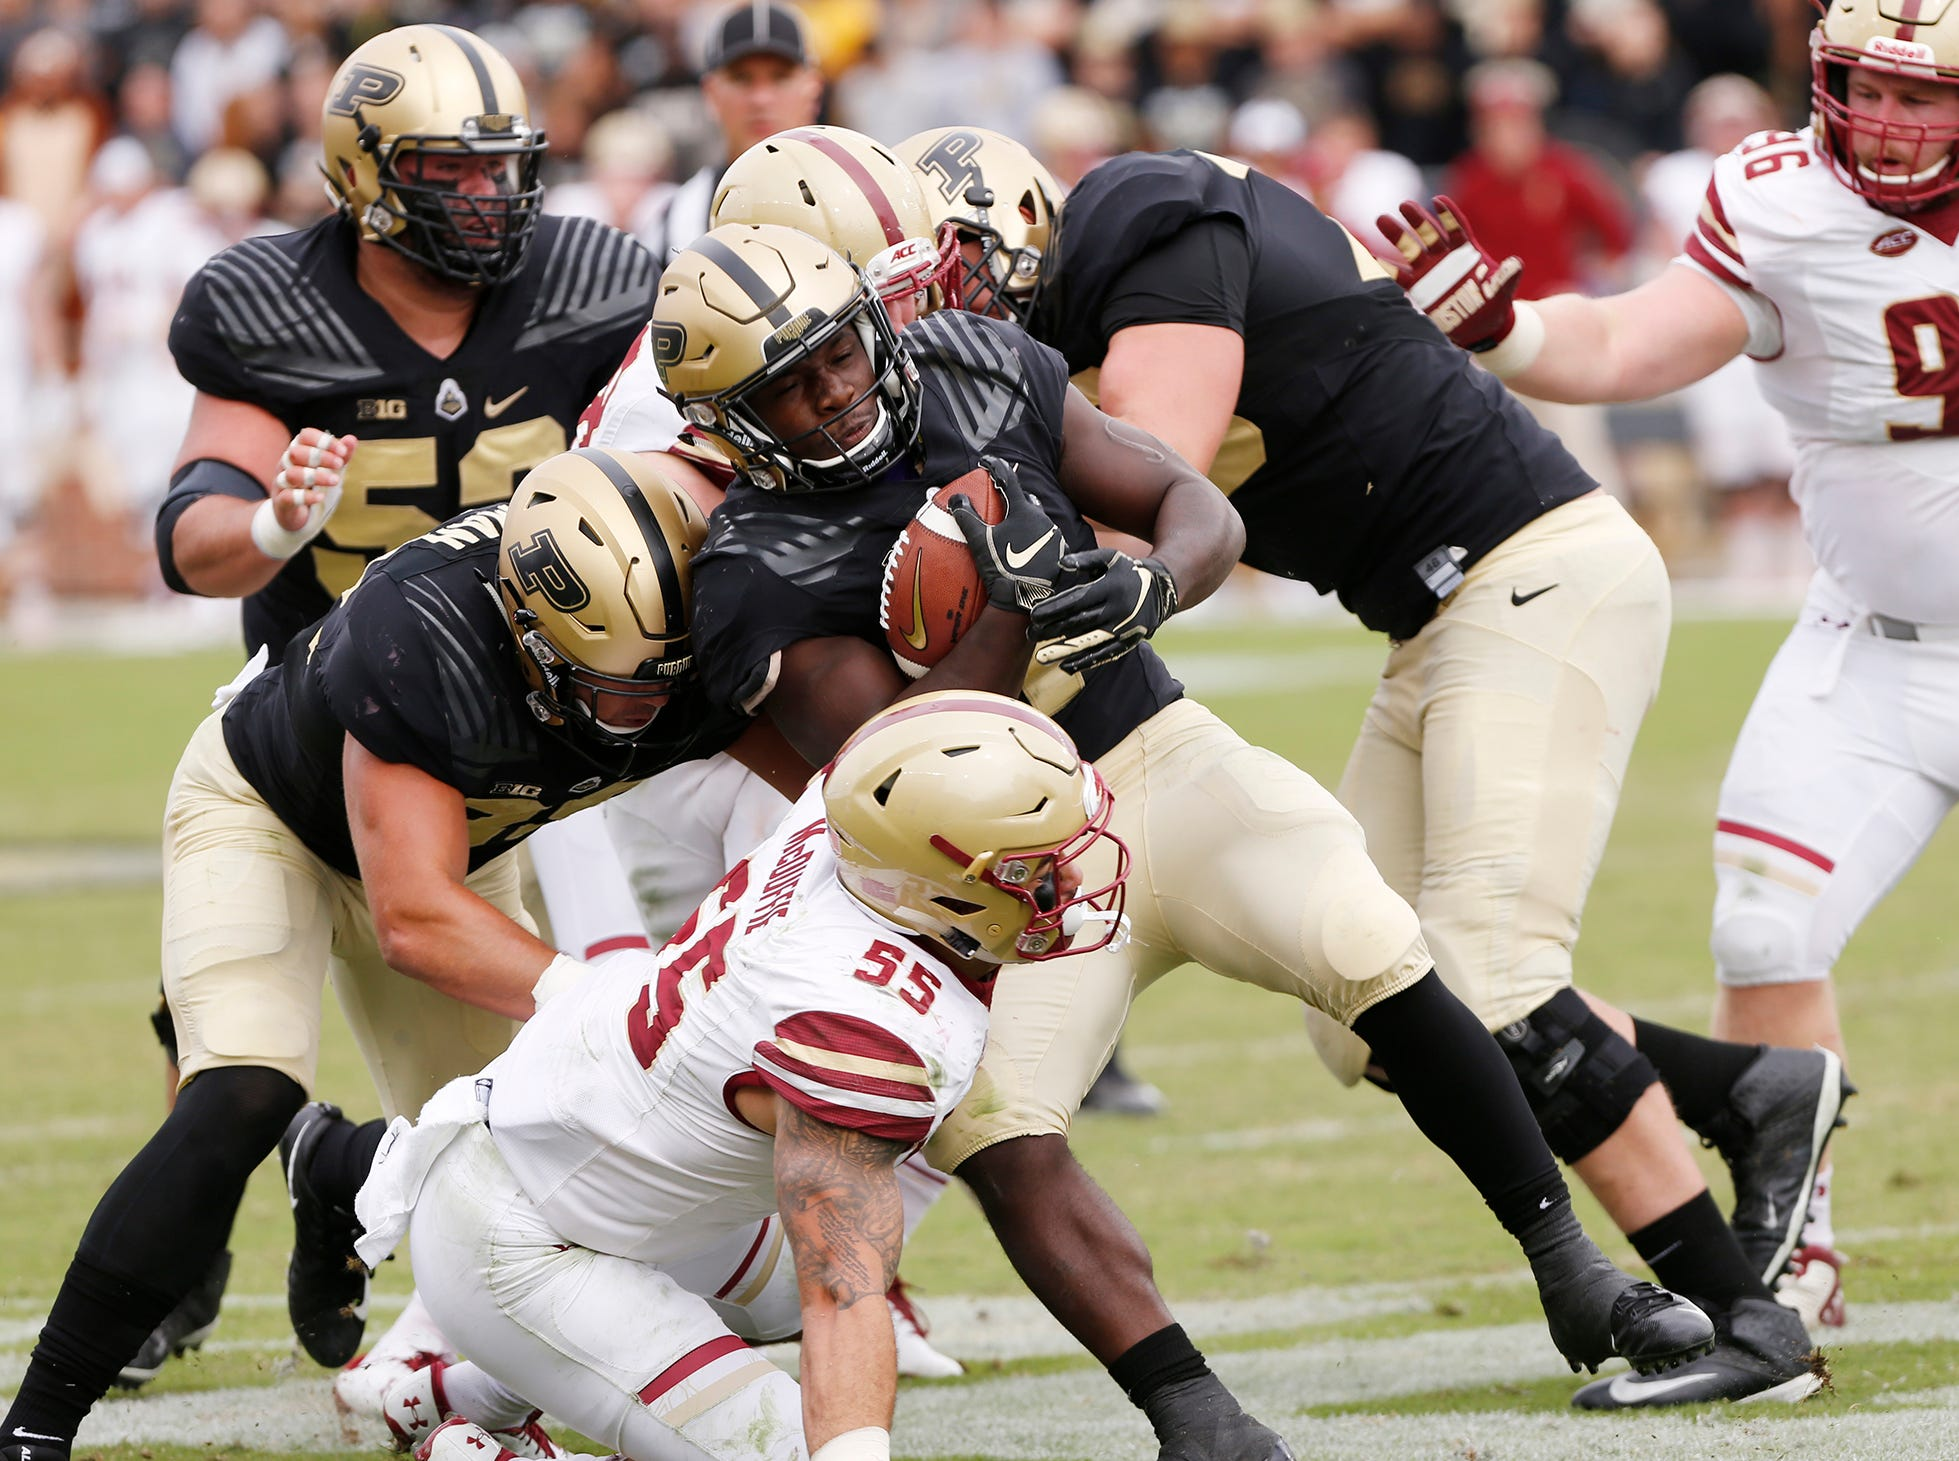 Tracking Purdue offense | Running game producing tough yards